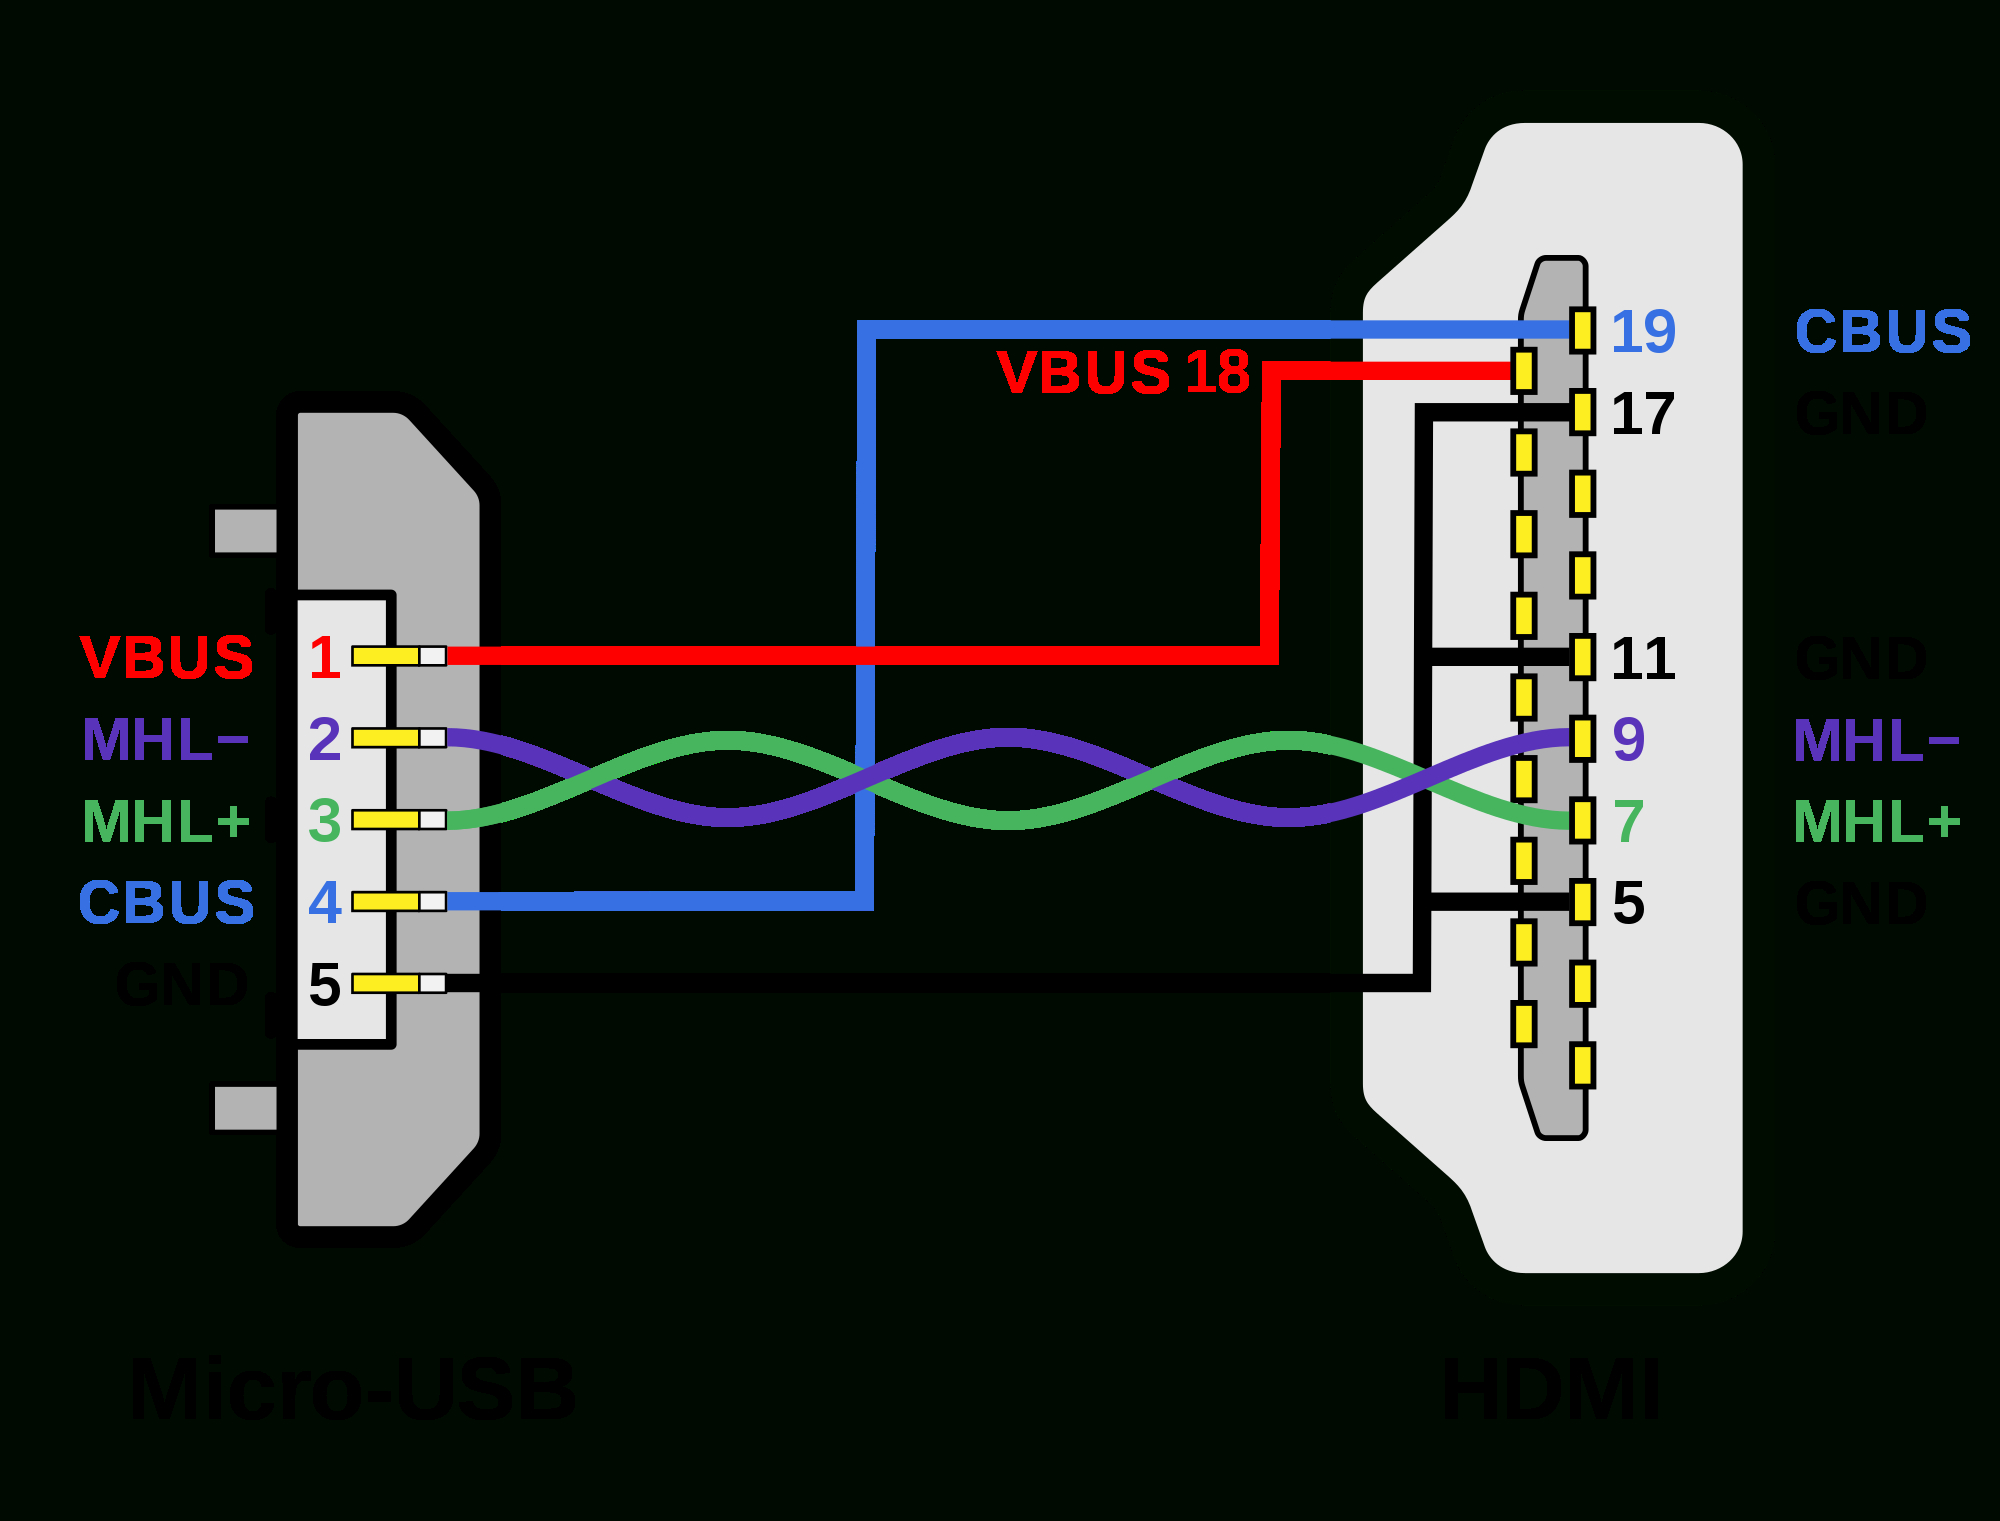 File:mhl Micro-Usb - Hdmi Wiring Diagram.svg - Wikimedia Commons - Micro Usb To Hdmi Cable Wiring Diagram